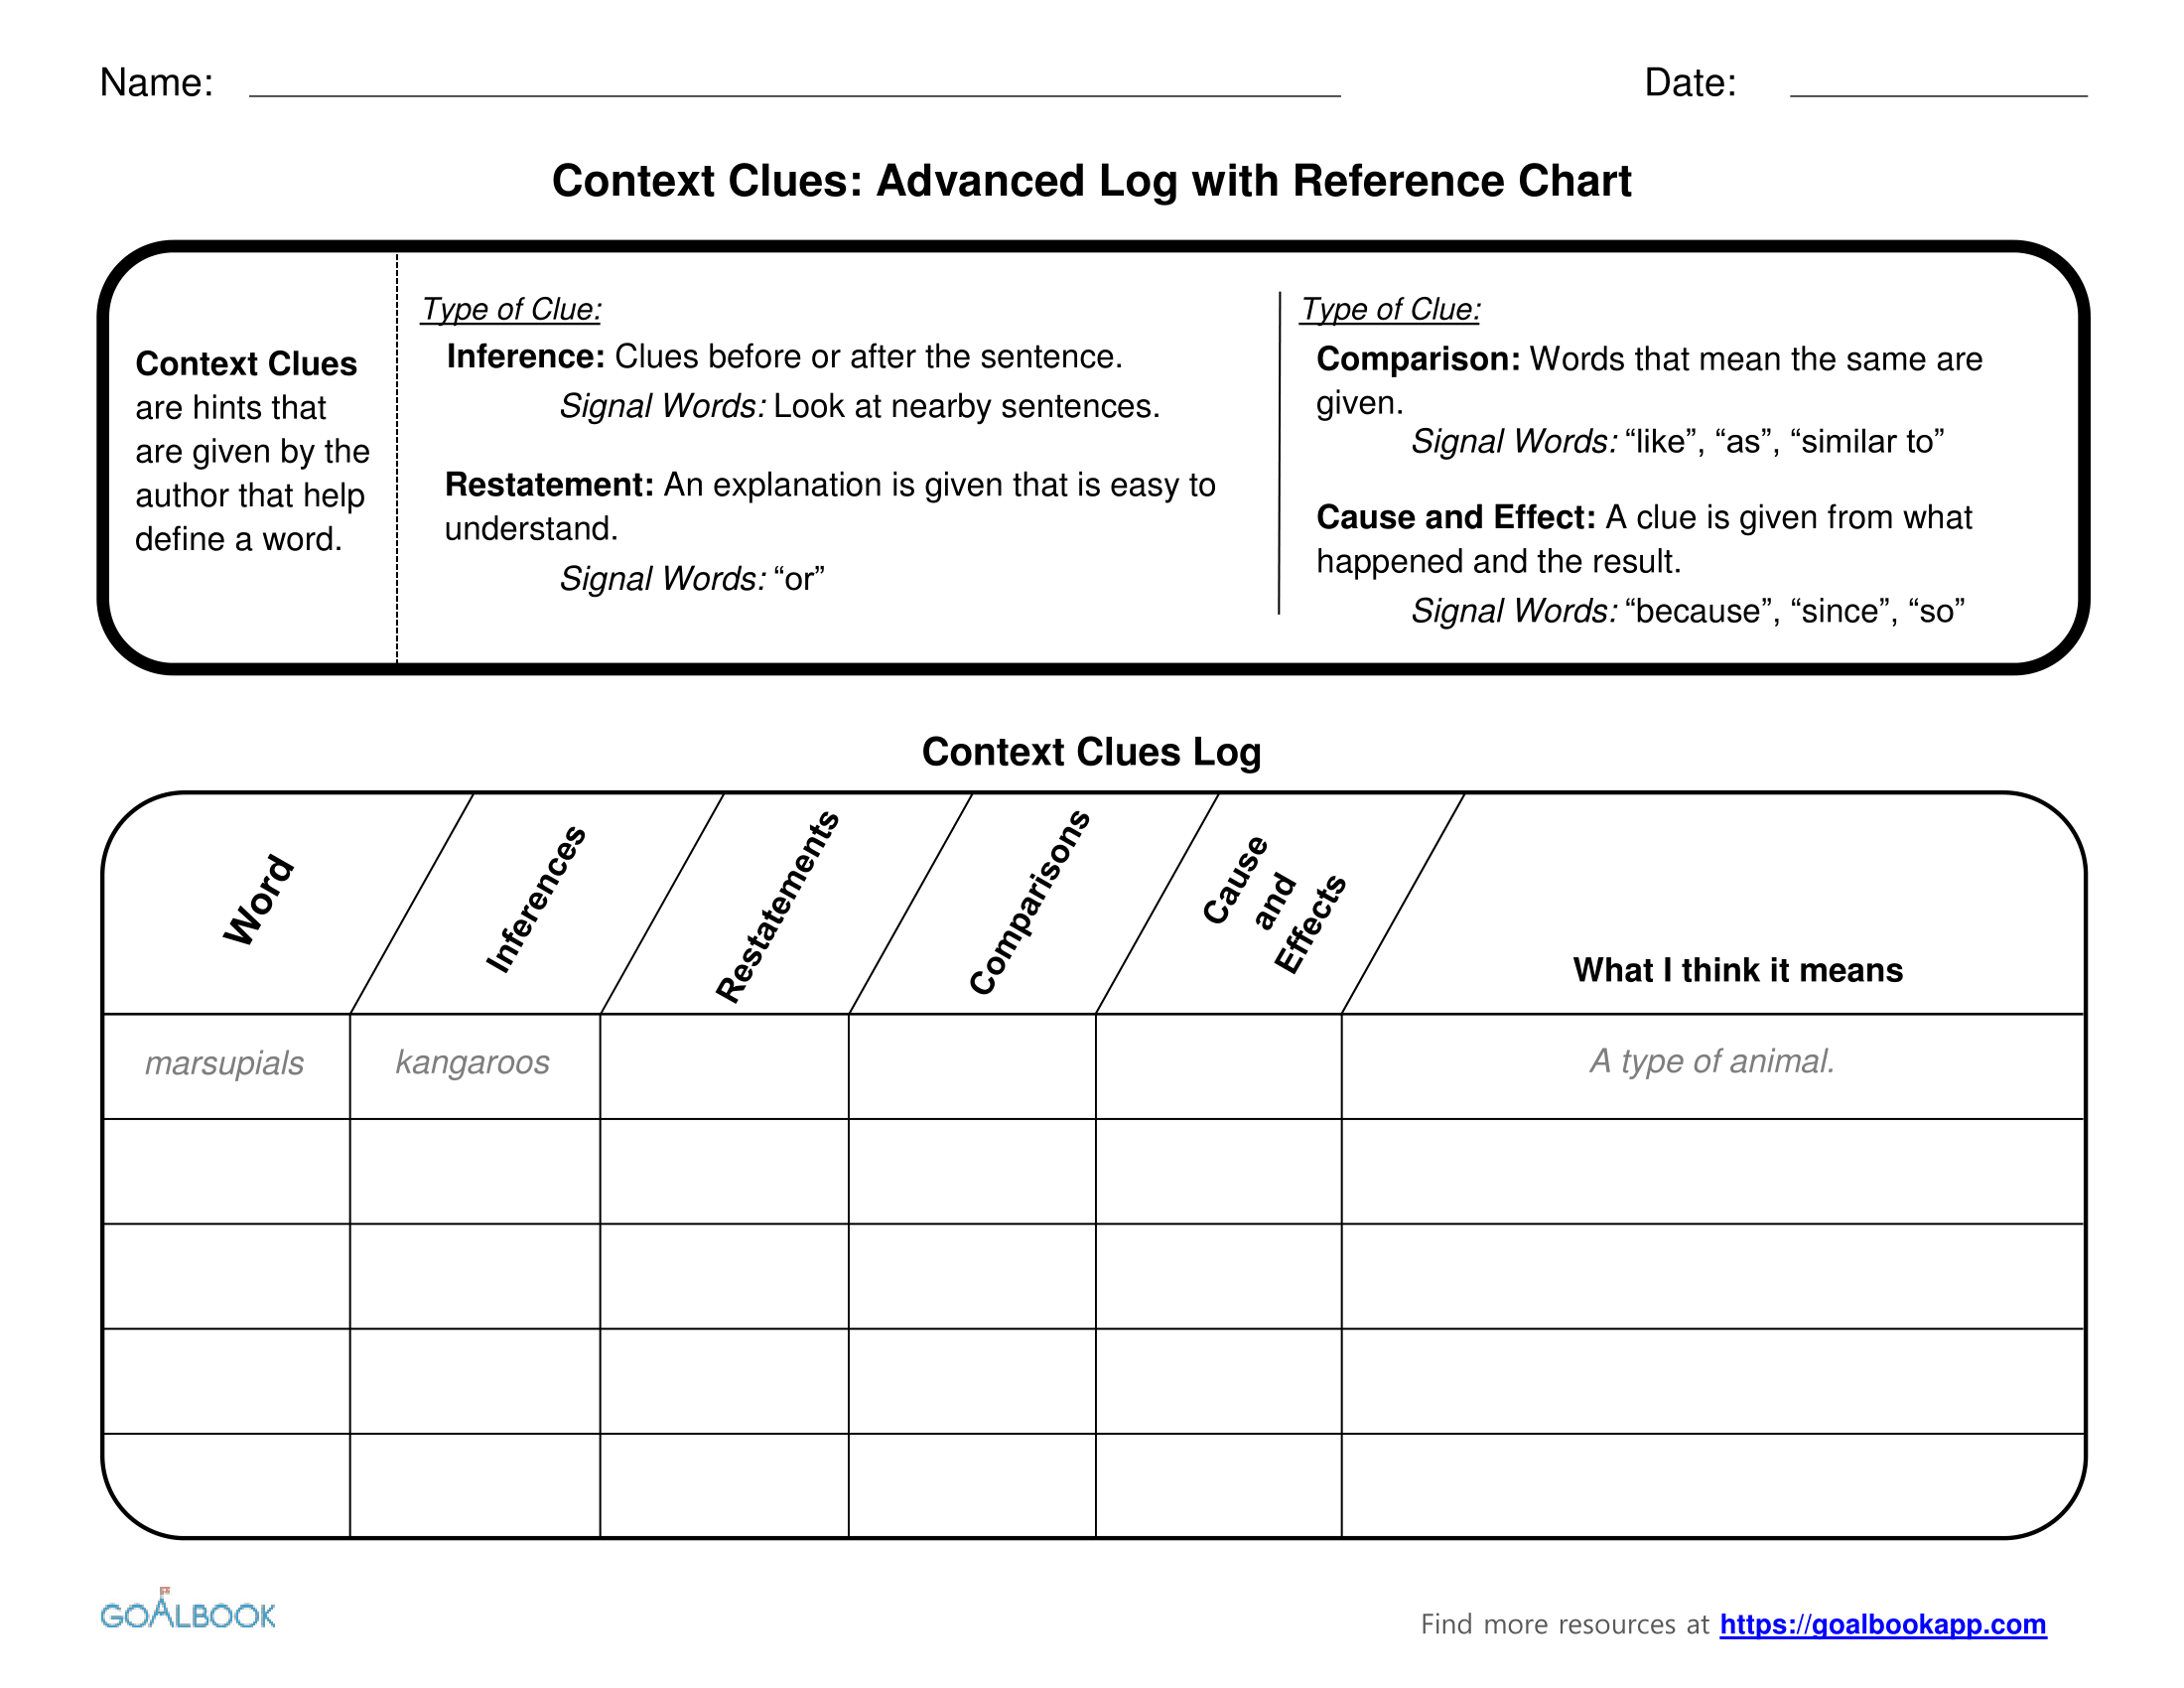 Advanced Log for Recording Context Clues